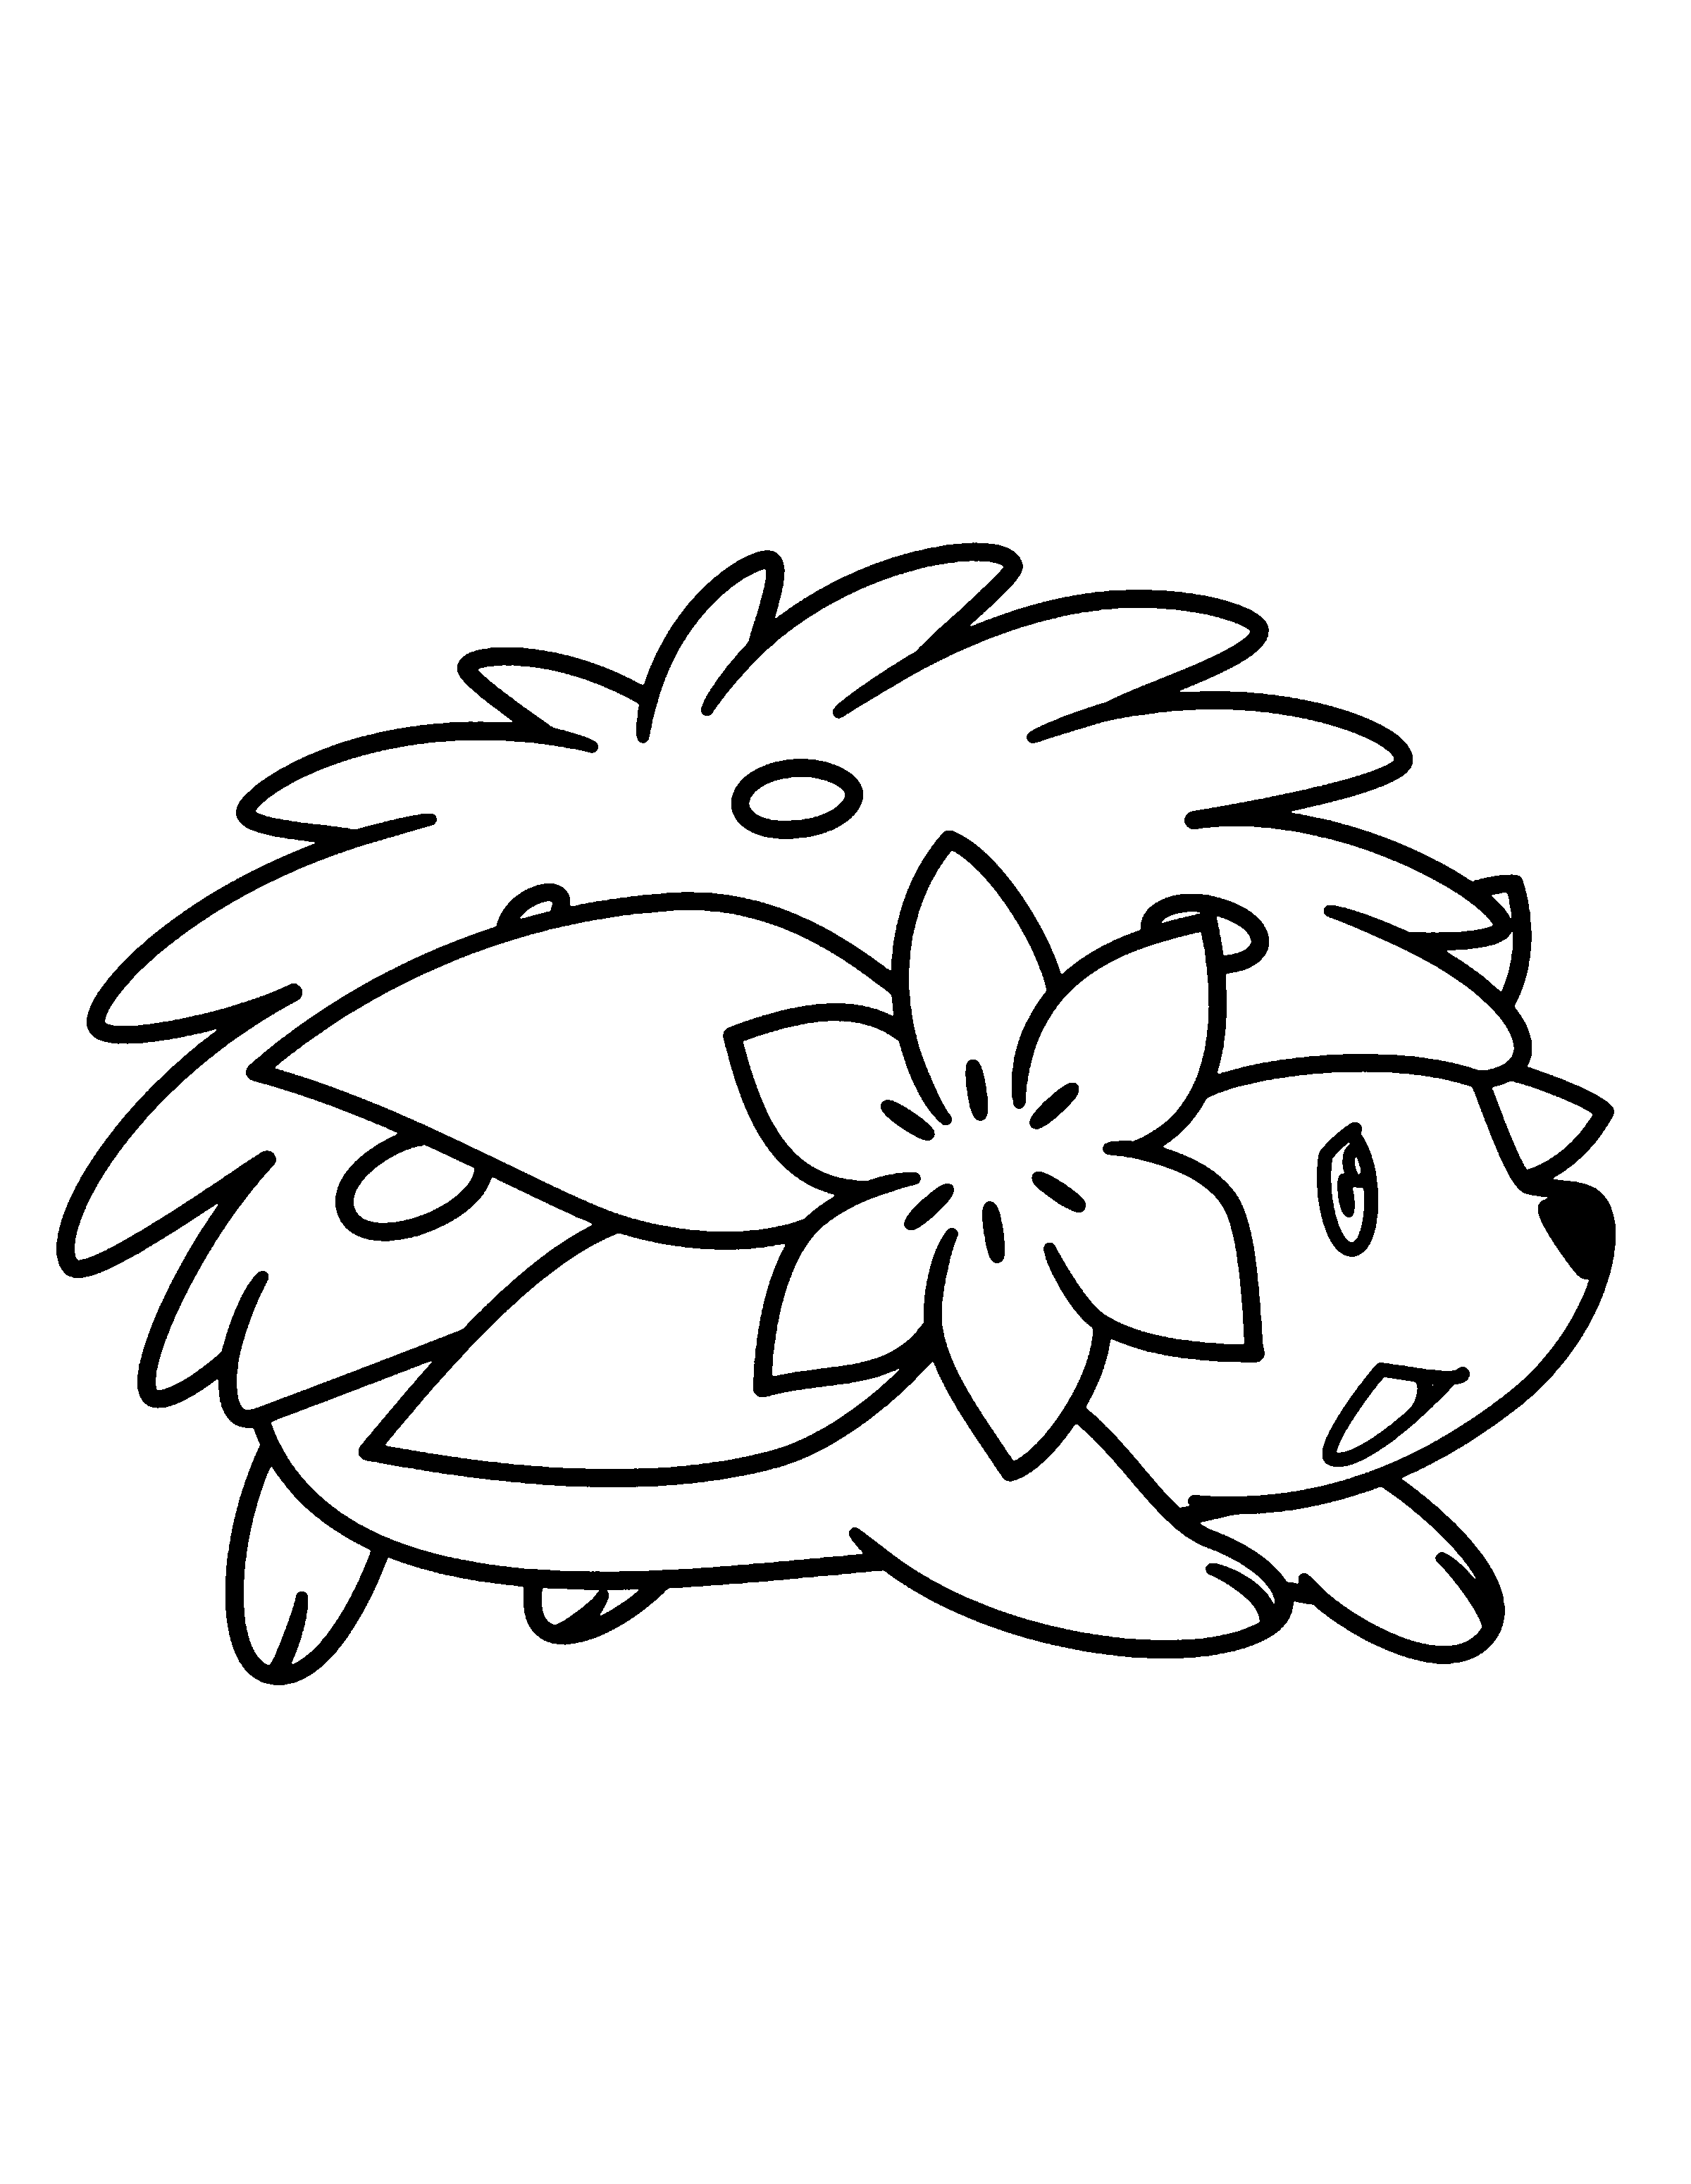 2400x3100 Shaymin Pokemon Character Free Coloring Page Animals, Kids